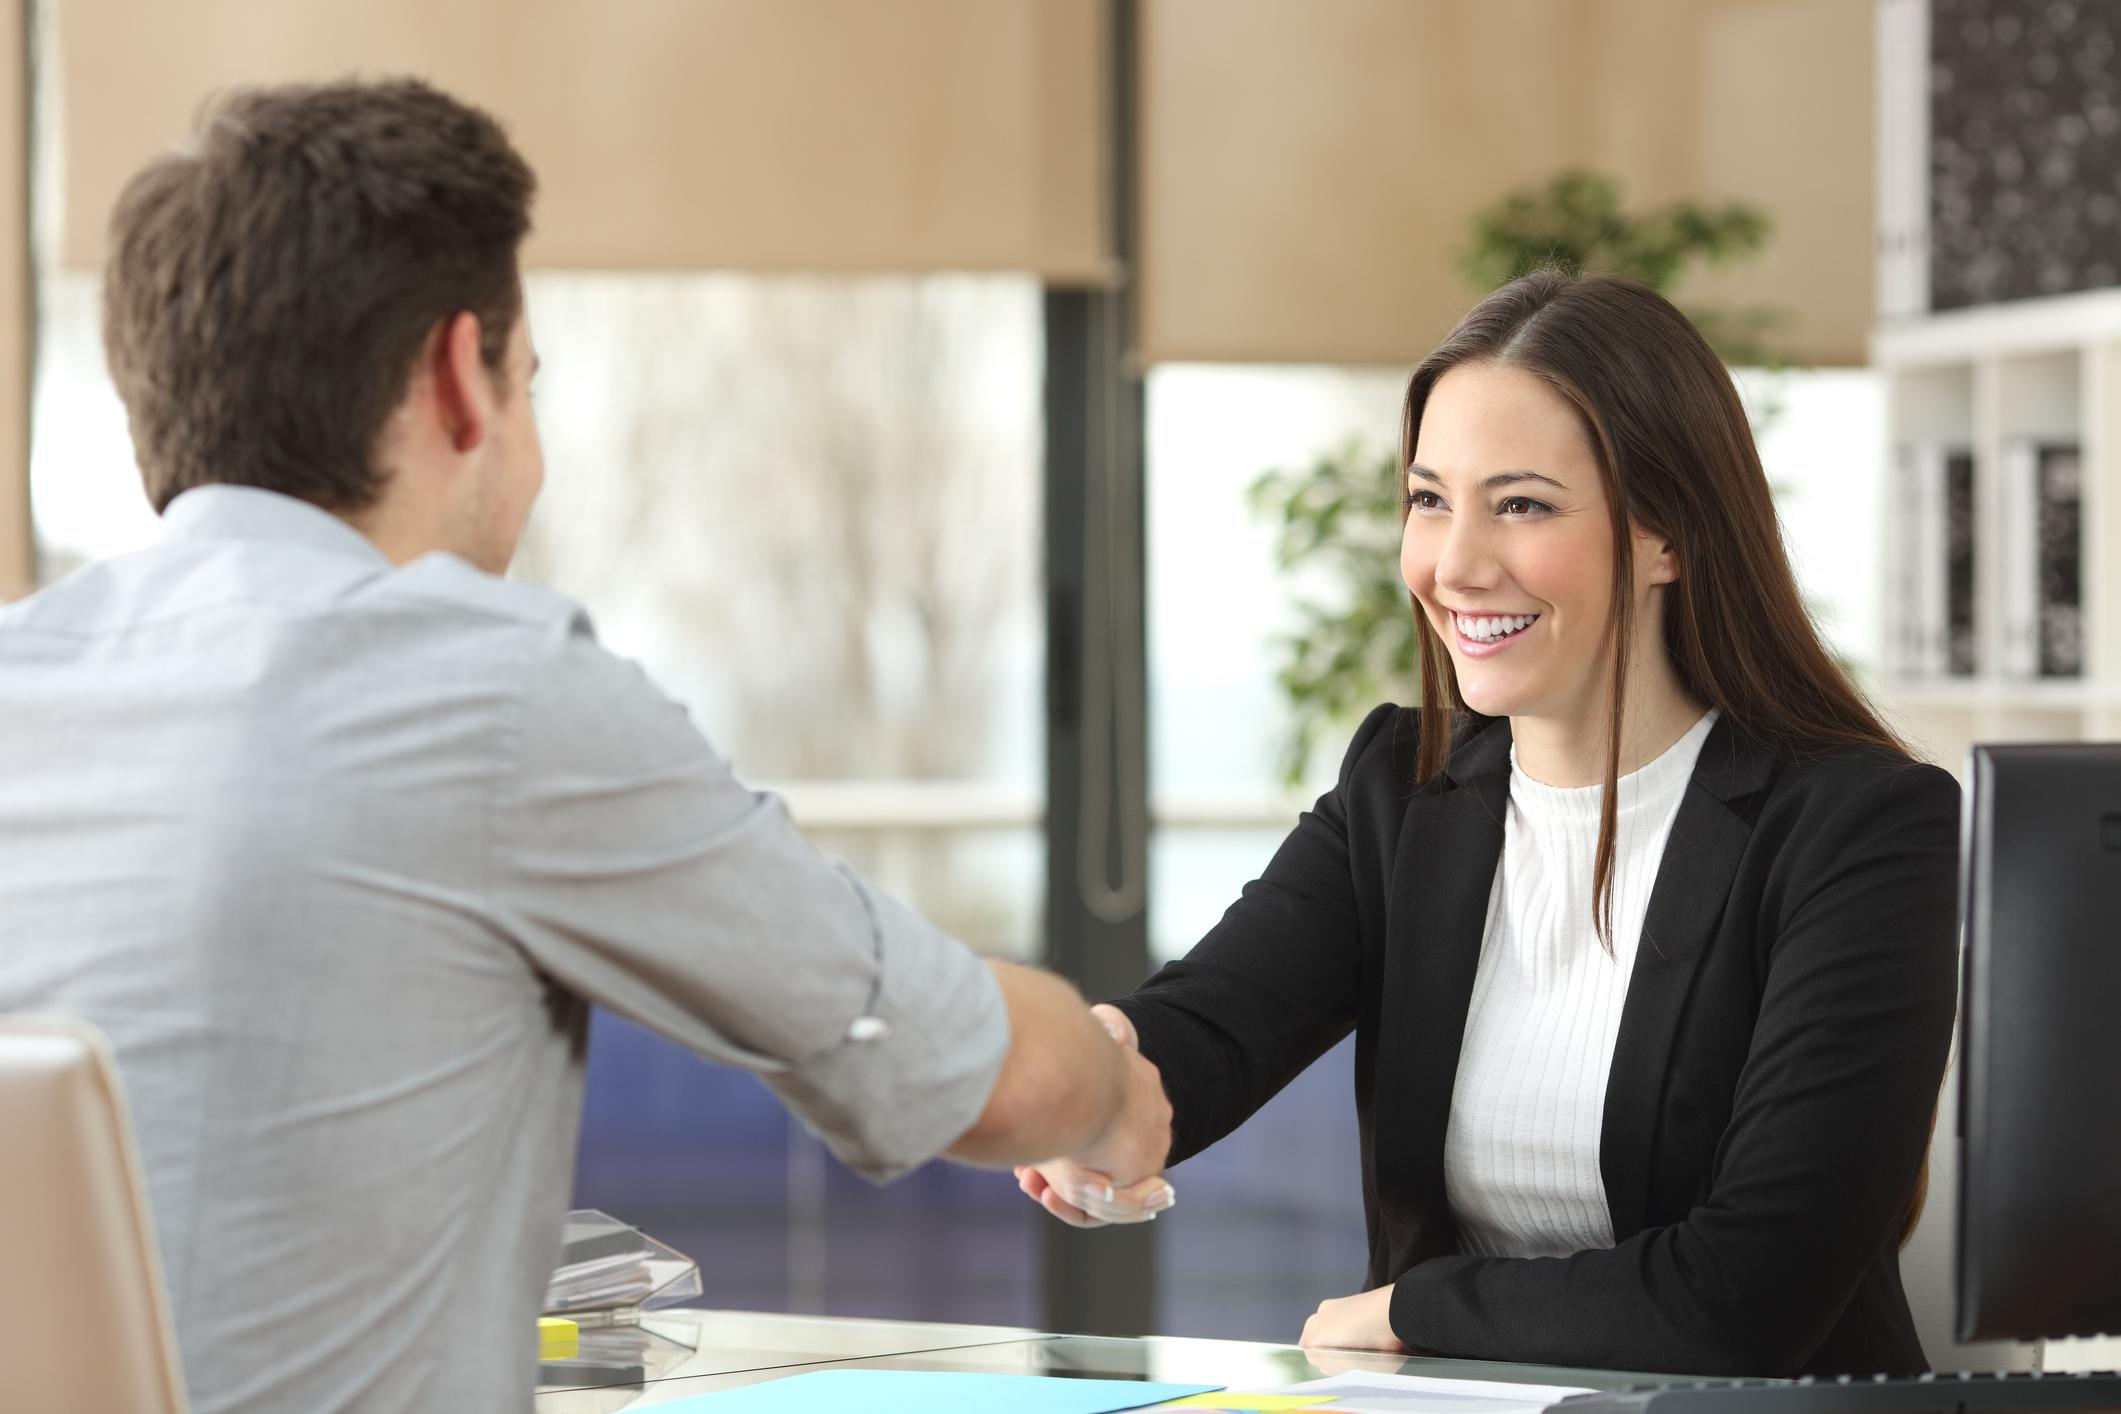 4 Ways to Avoid Botching a Job Interview